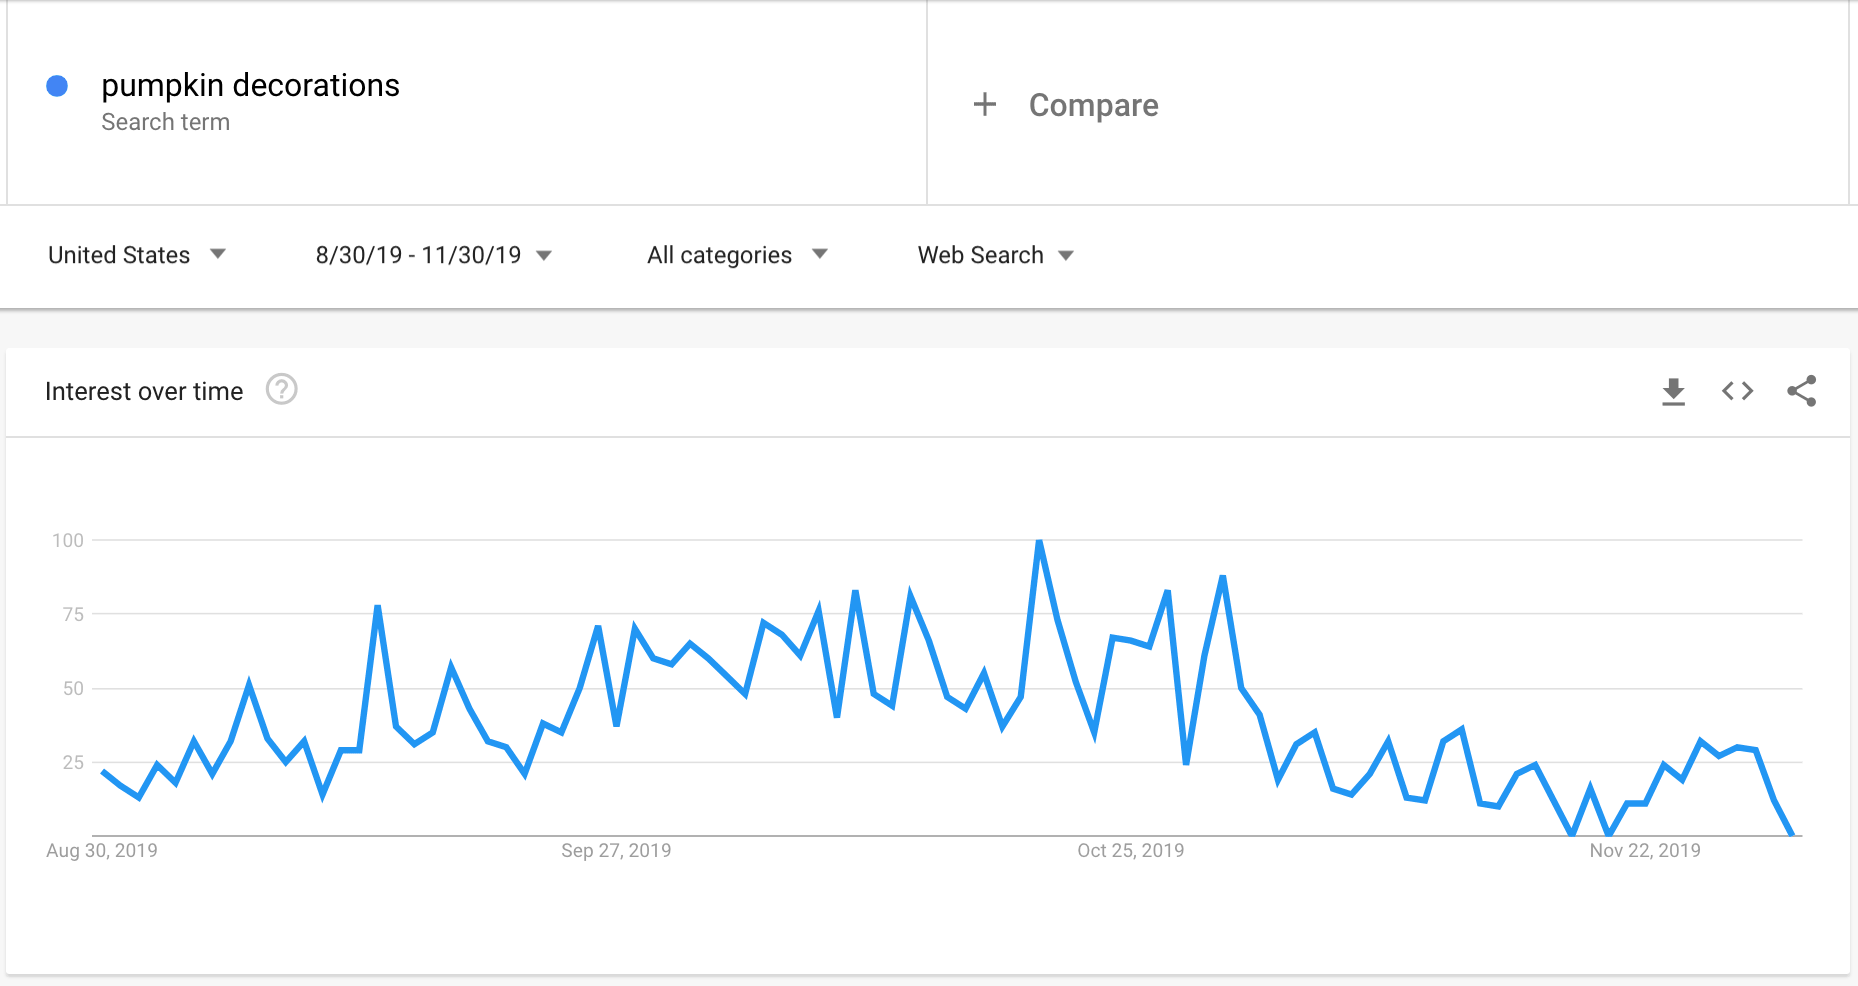 Google Trends graph showing the interest in pumpkin decorations